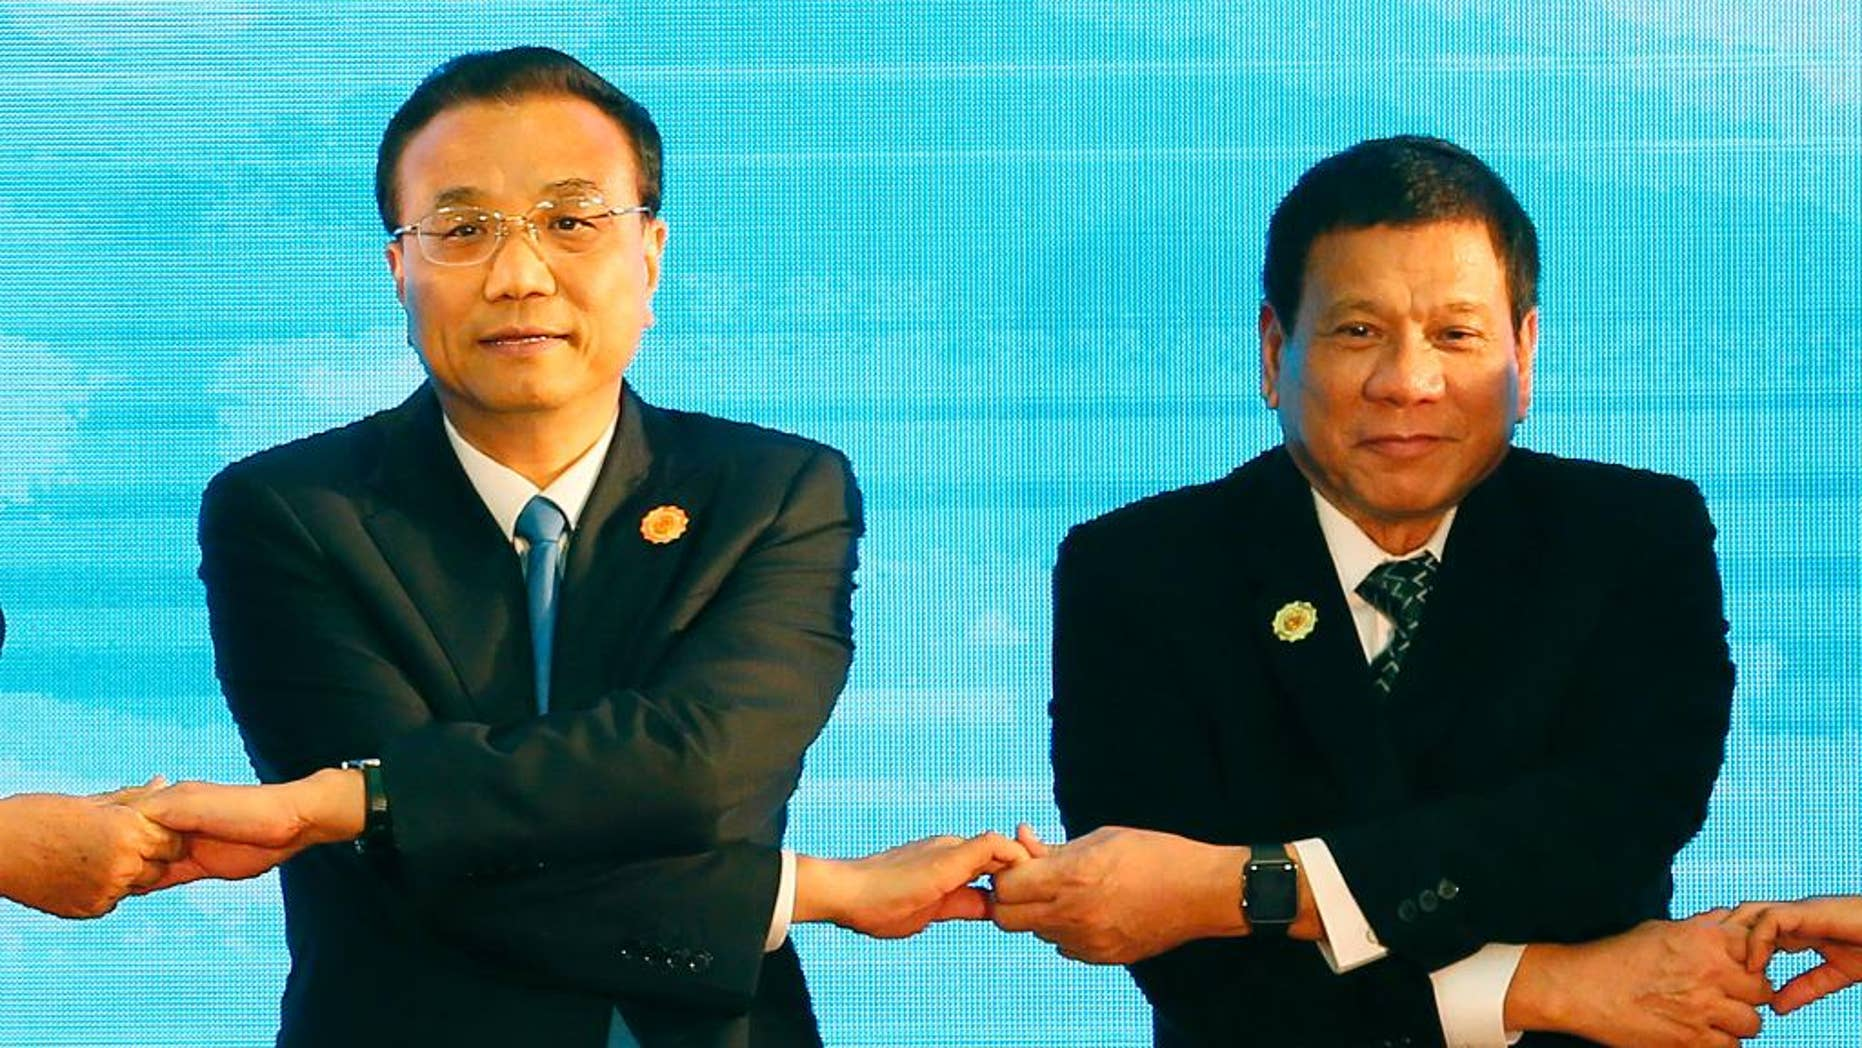 FILE - In this Sept. 7, 2016 file photo, Chinese Prime Minister Li Keqiang, left, and Philippine President Rodrigo Duterte link arms during the ASEAN Plus Three summit in the ongoing 28th and 29th ASEAN Summits and other related summits at the National Convention Center in Vientiane, Laos. After lashing out at longtime ally America, the new Philippine president is making a state visit to China in a charm offensive that will help define how far he wants to shift allegiance from treaty ally the U.S. to an Asian superpower locked in a territorial standoff with his small, impoverished country. (AP Photo/Bullit Marquez, File)